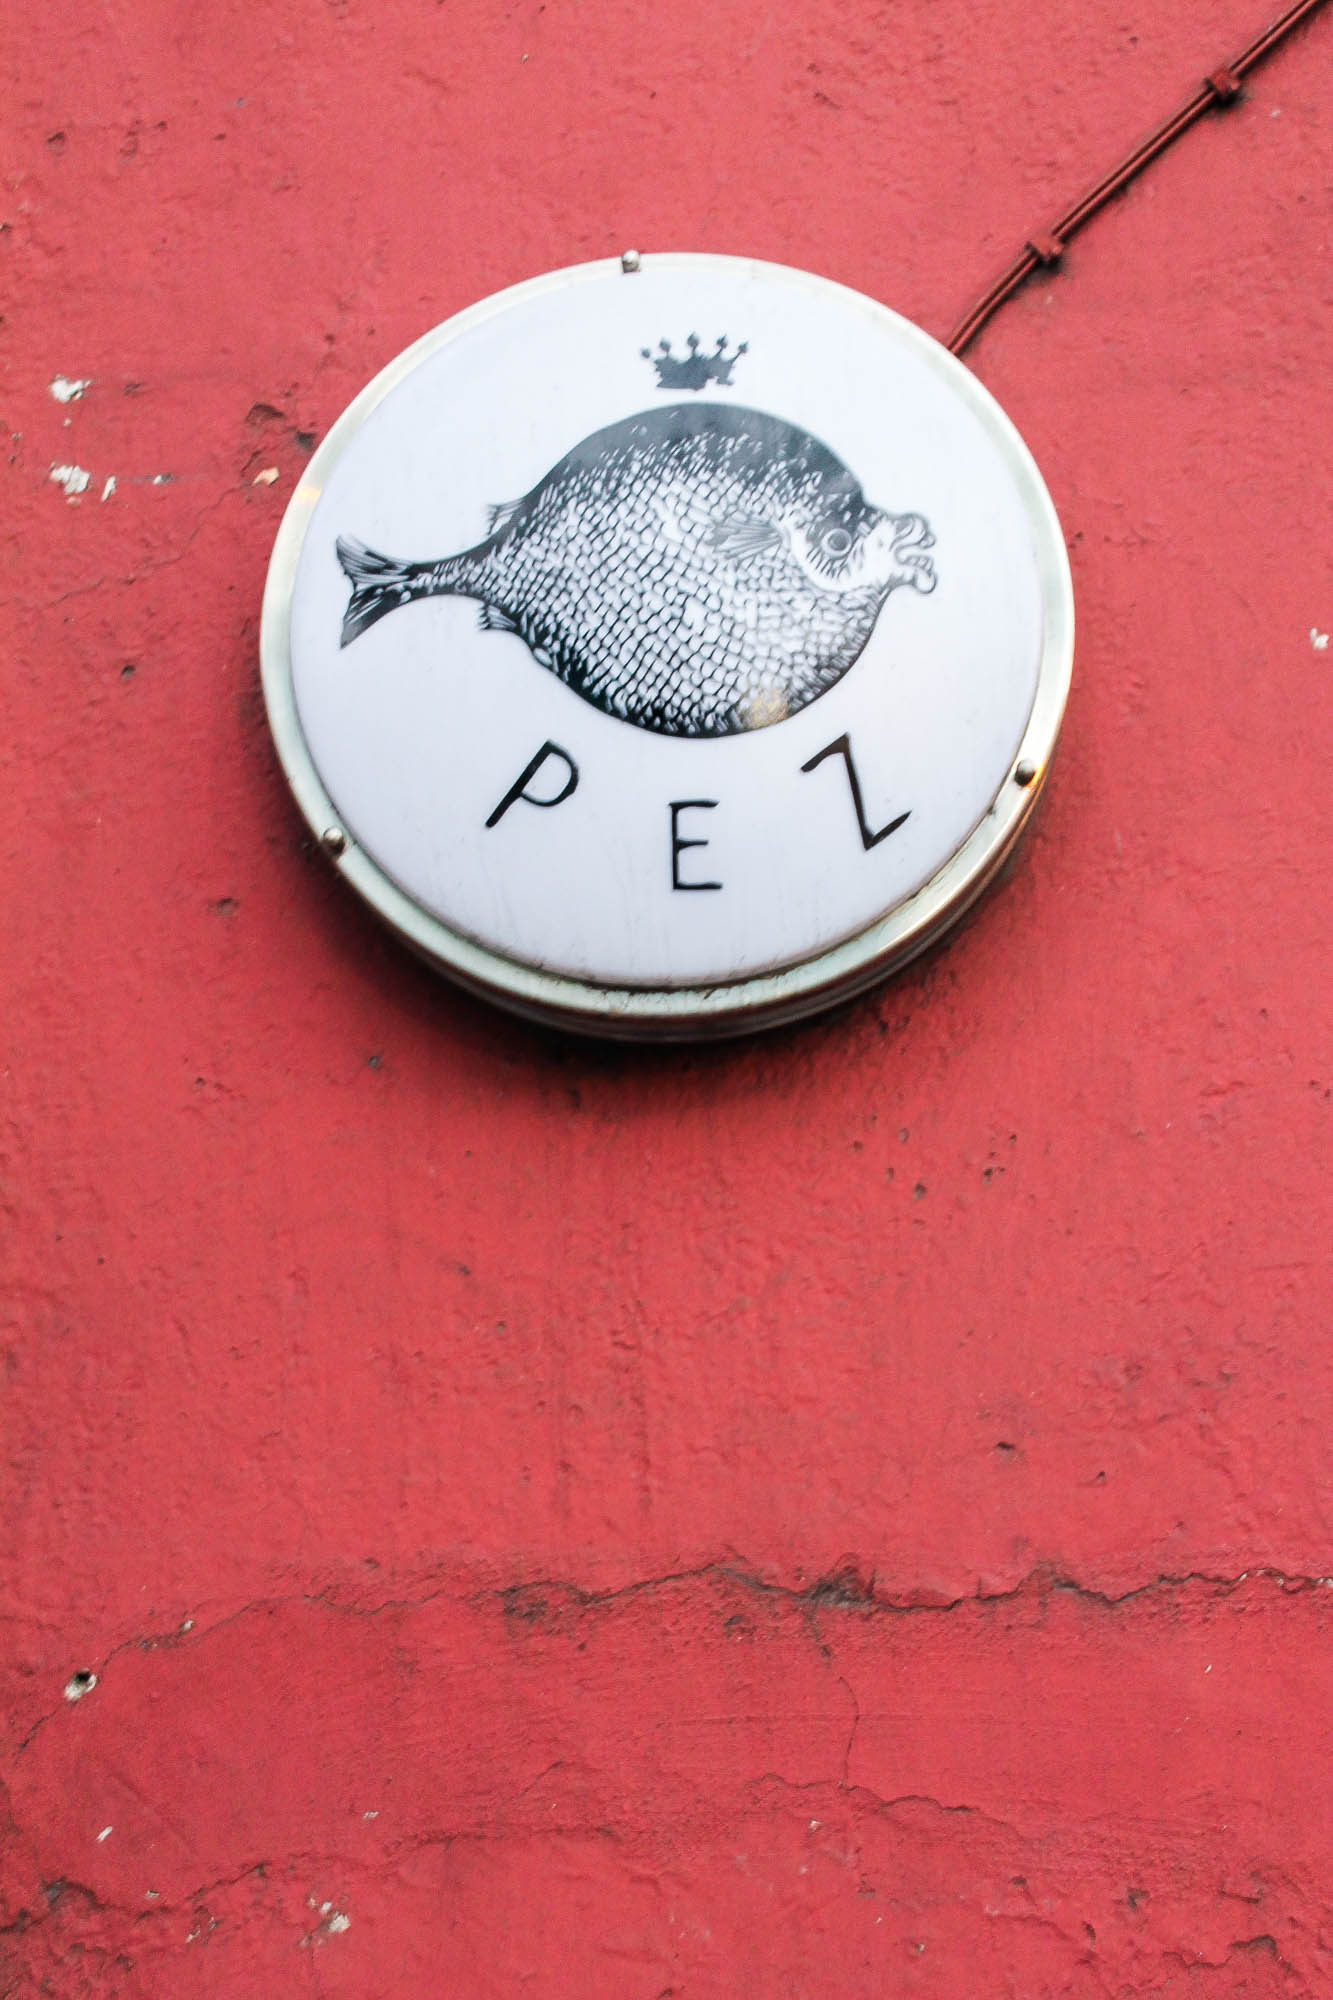 Pez || OAXACA CITY, MEXICO FOOD GUIDE || creamandhoney.ca